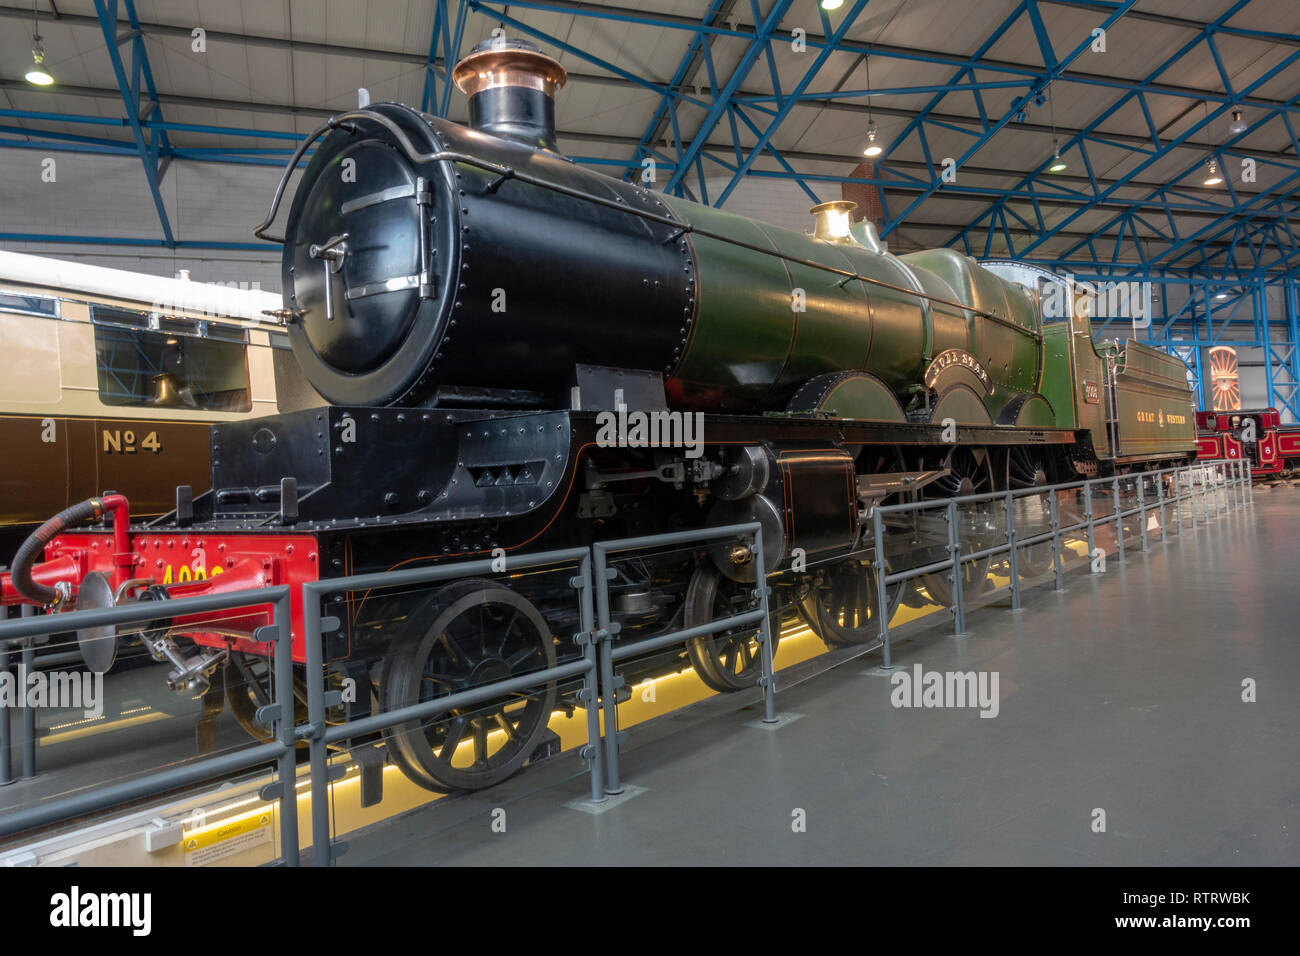 The Star of the West, the Lode Star of the Great Western Railway on display in the National Railway Museum, York, UK. - Stock Image